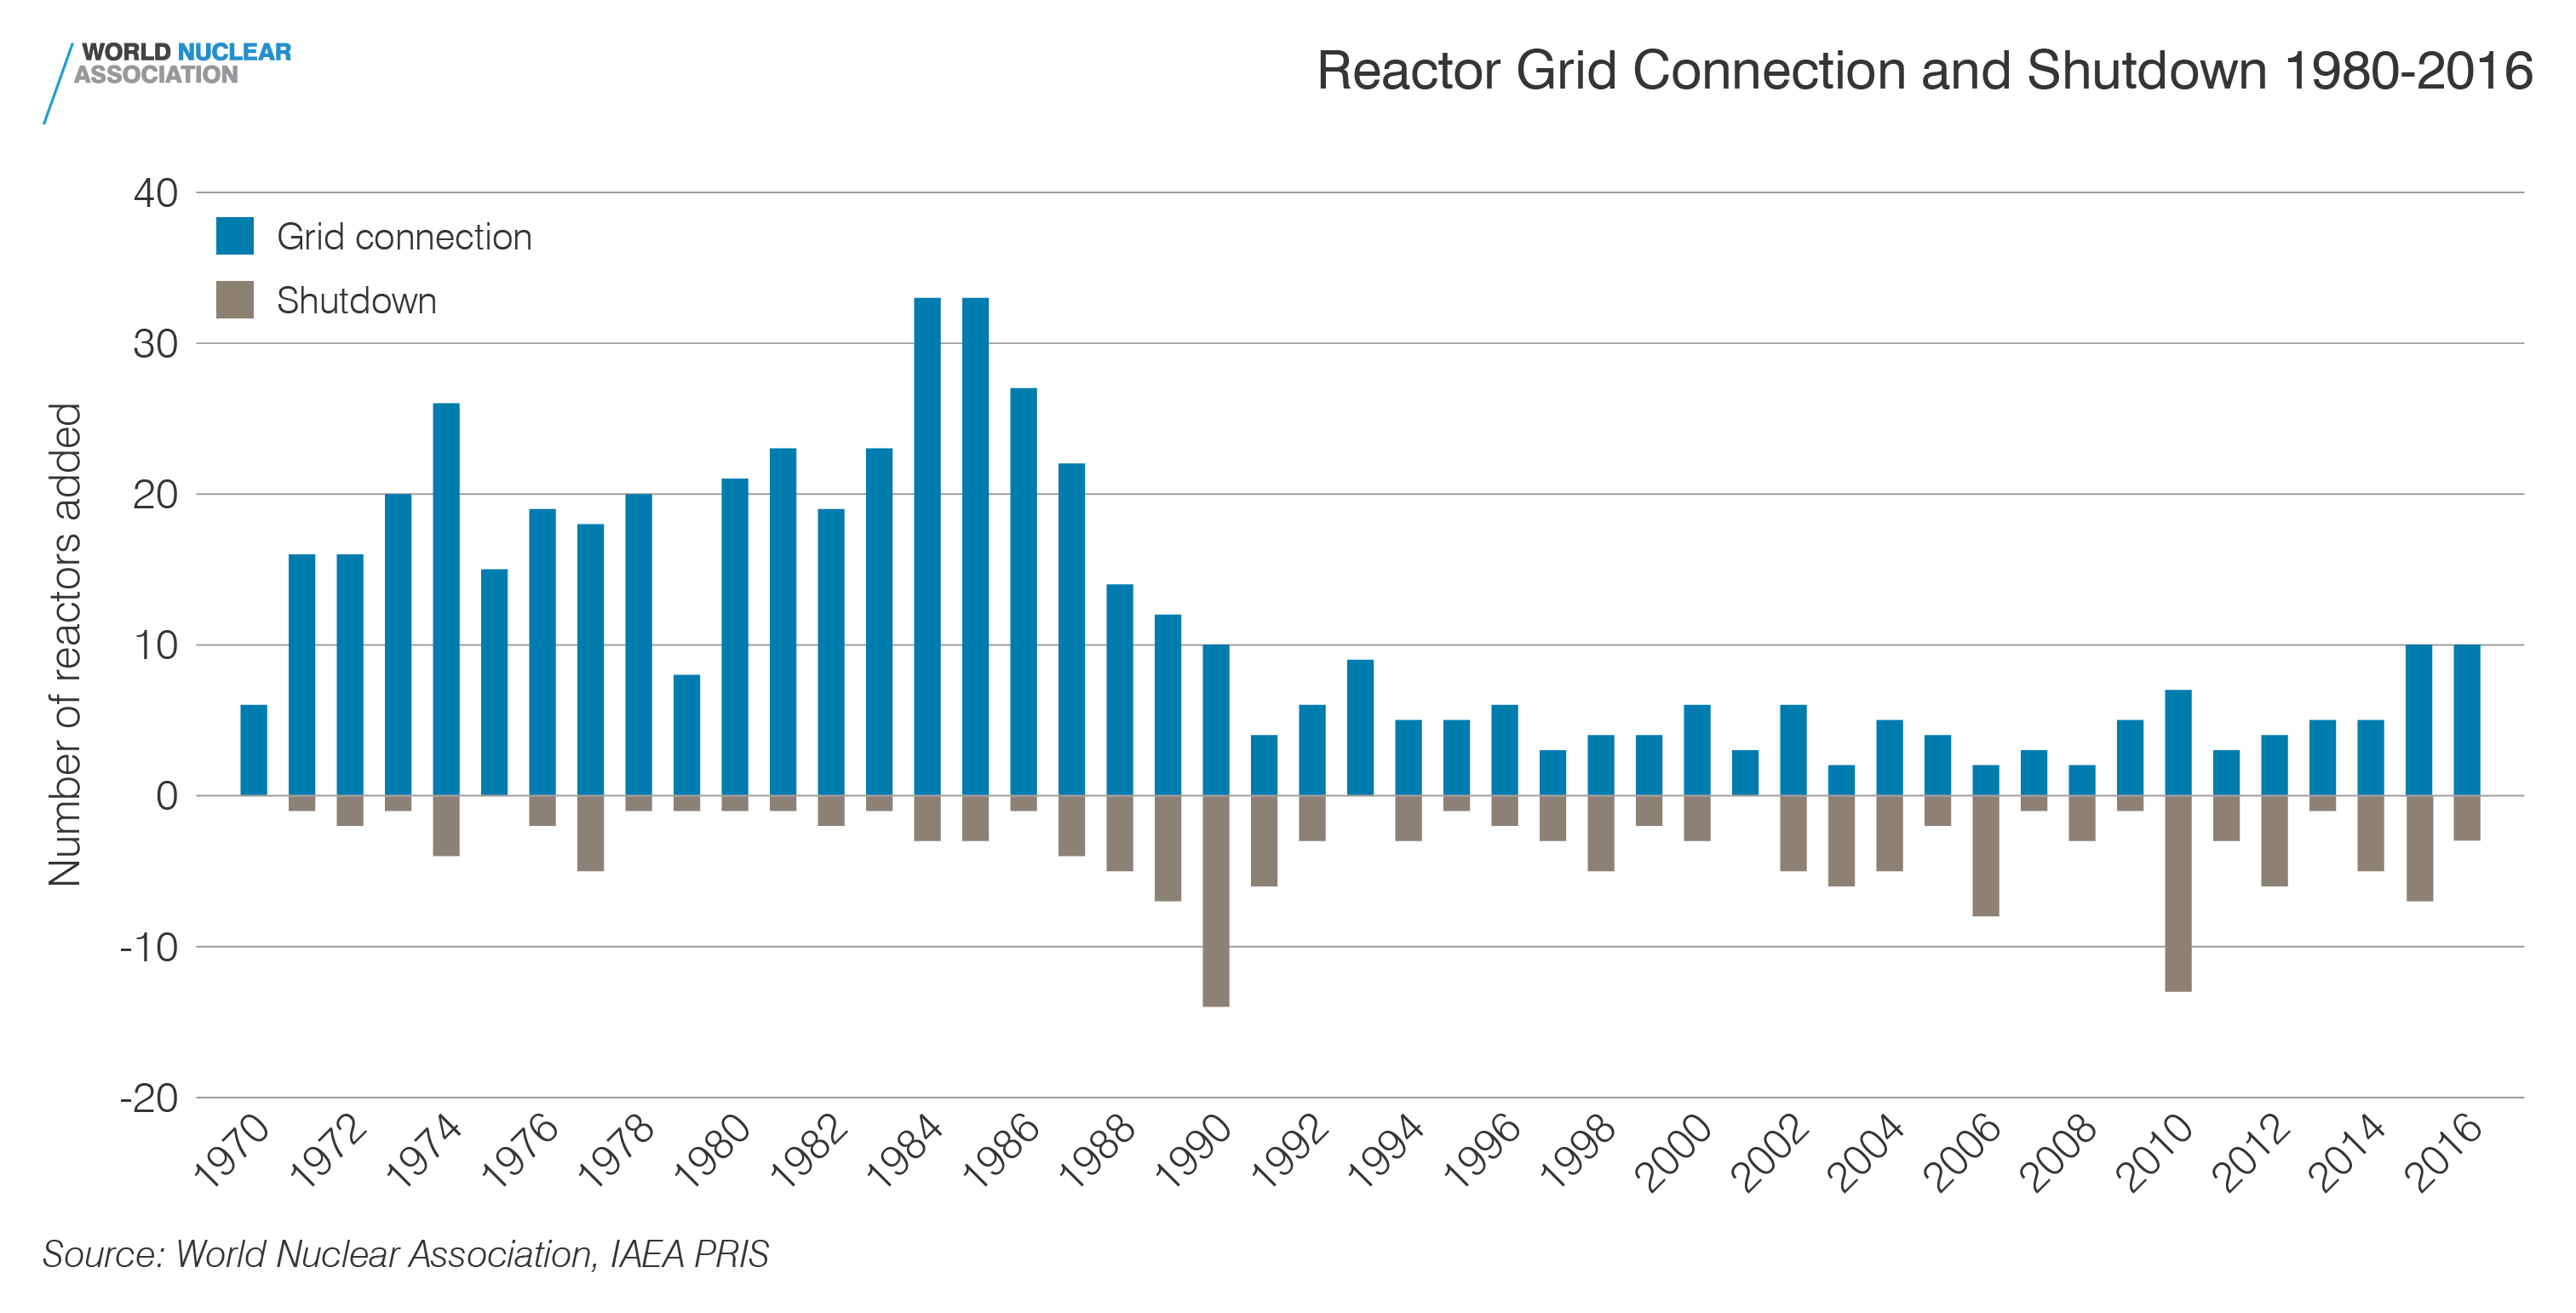 Reactor grid connection and shutdown 1954-2017